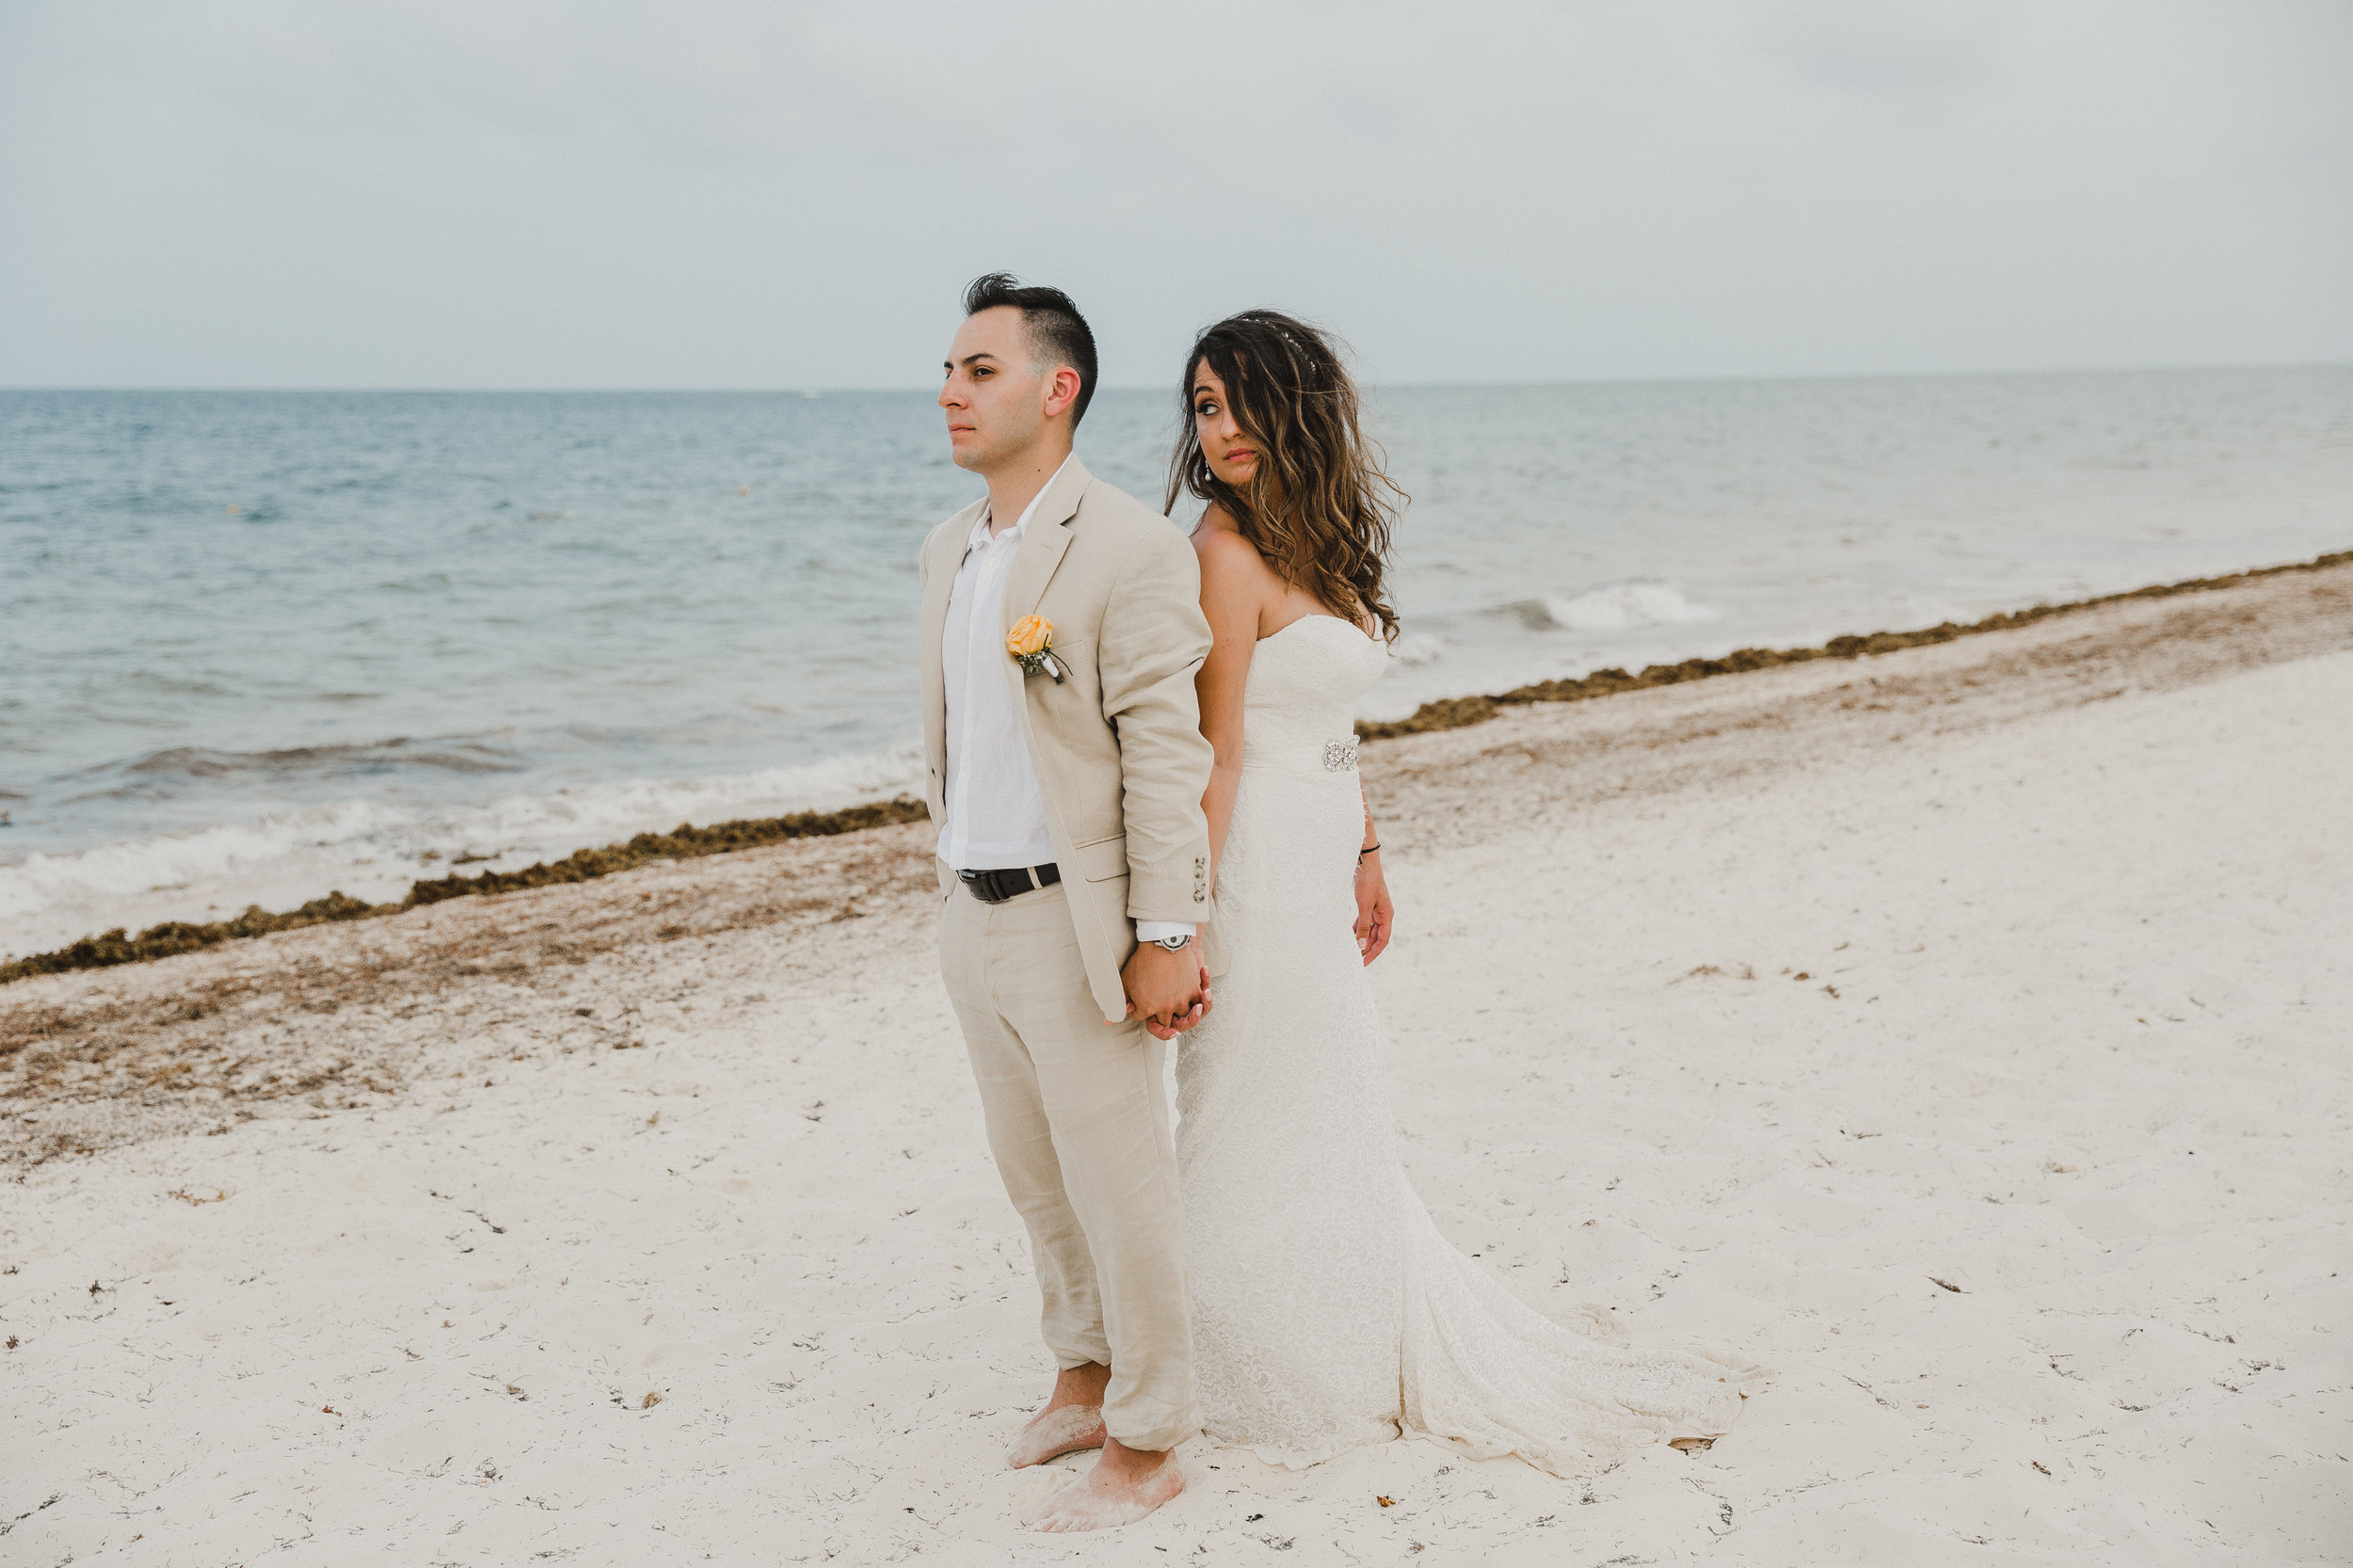 destinationweddingphotographer-cancunweddingphotographer-jodidanielphotography-cancunwedding